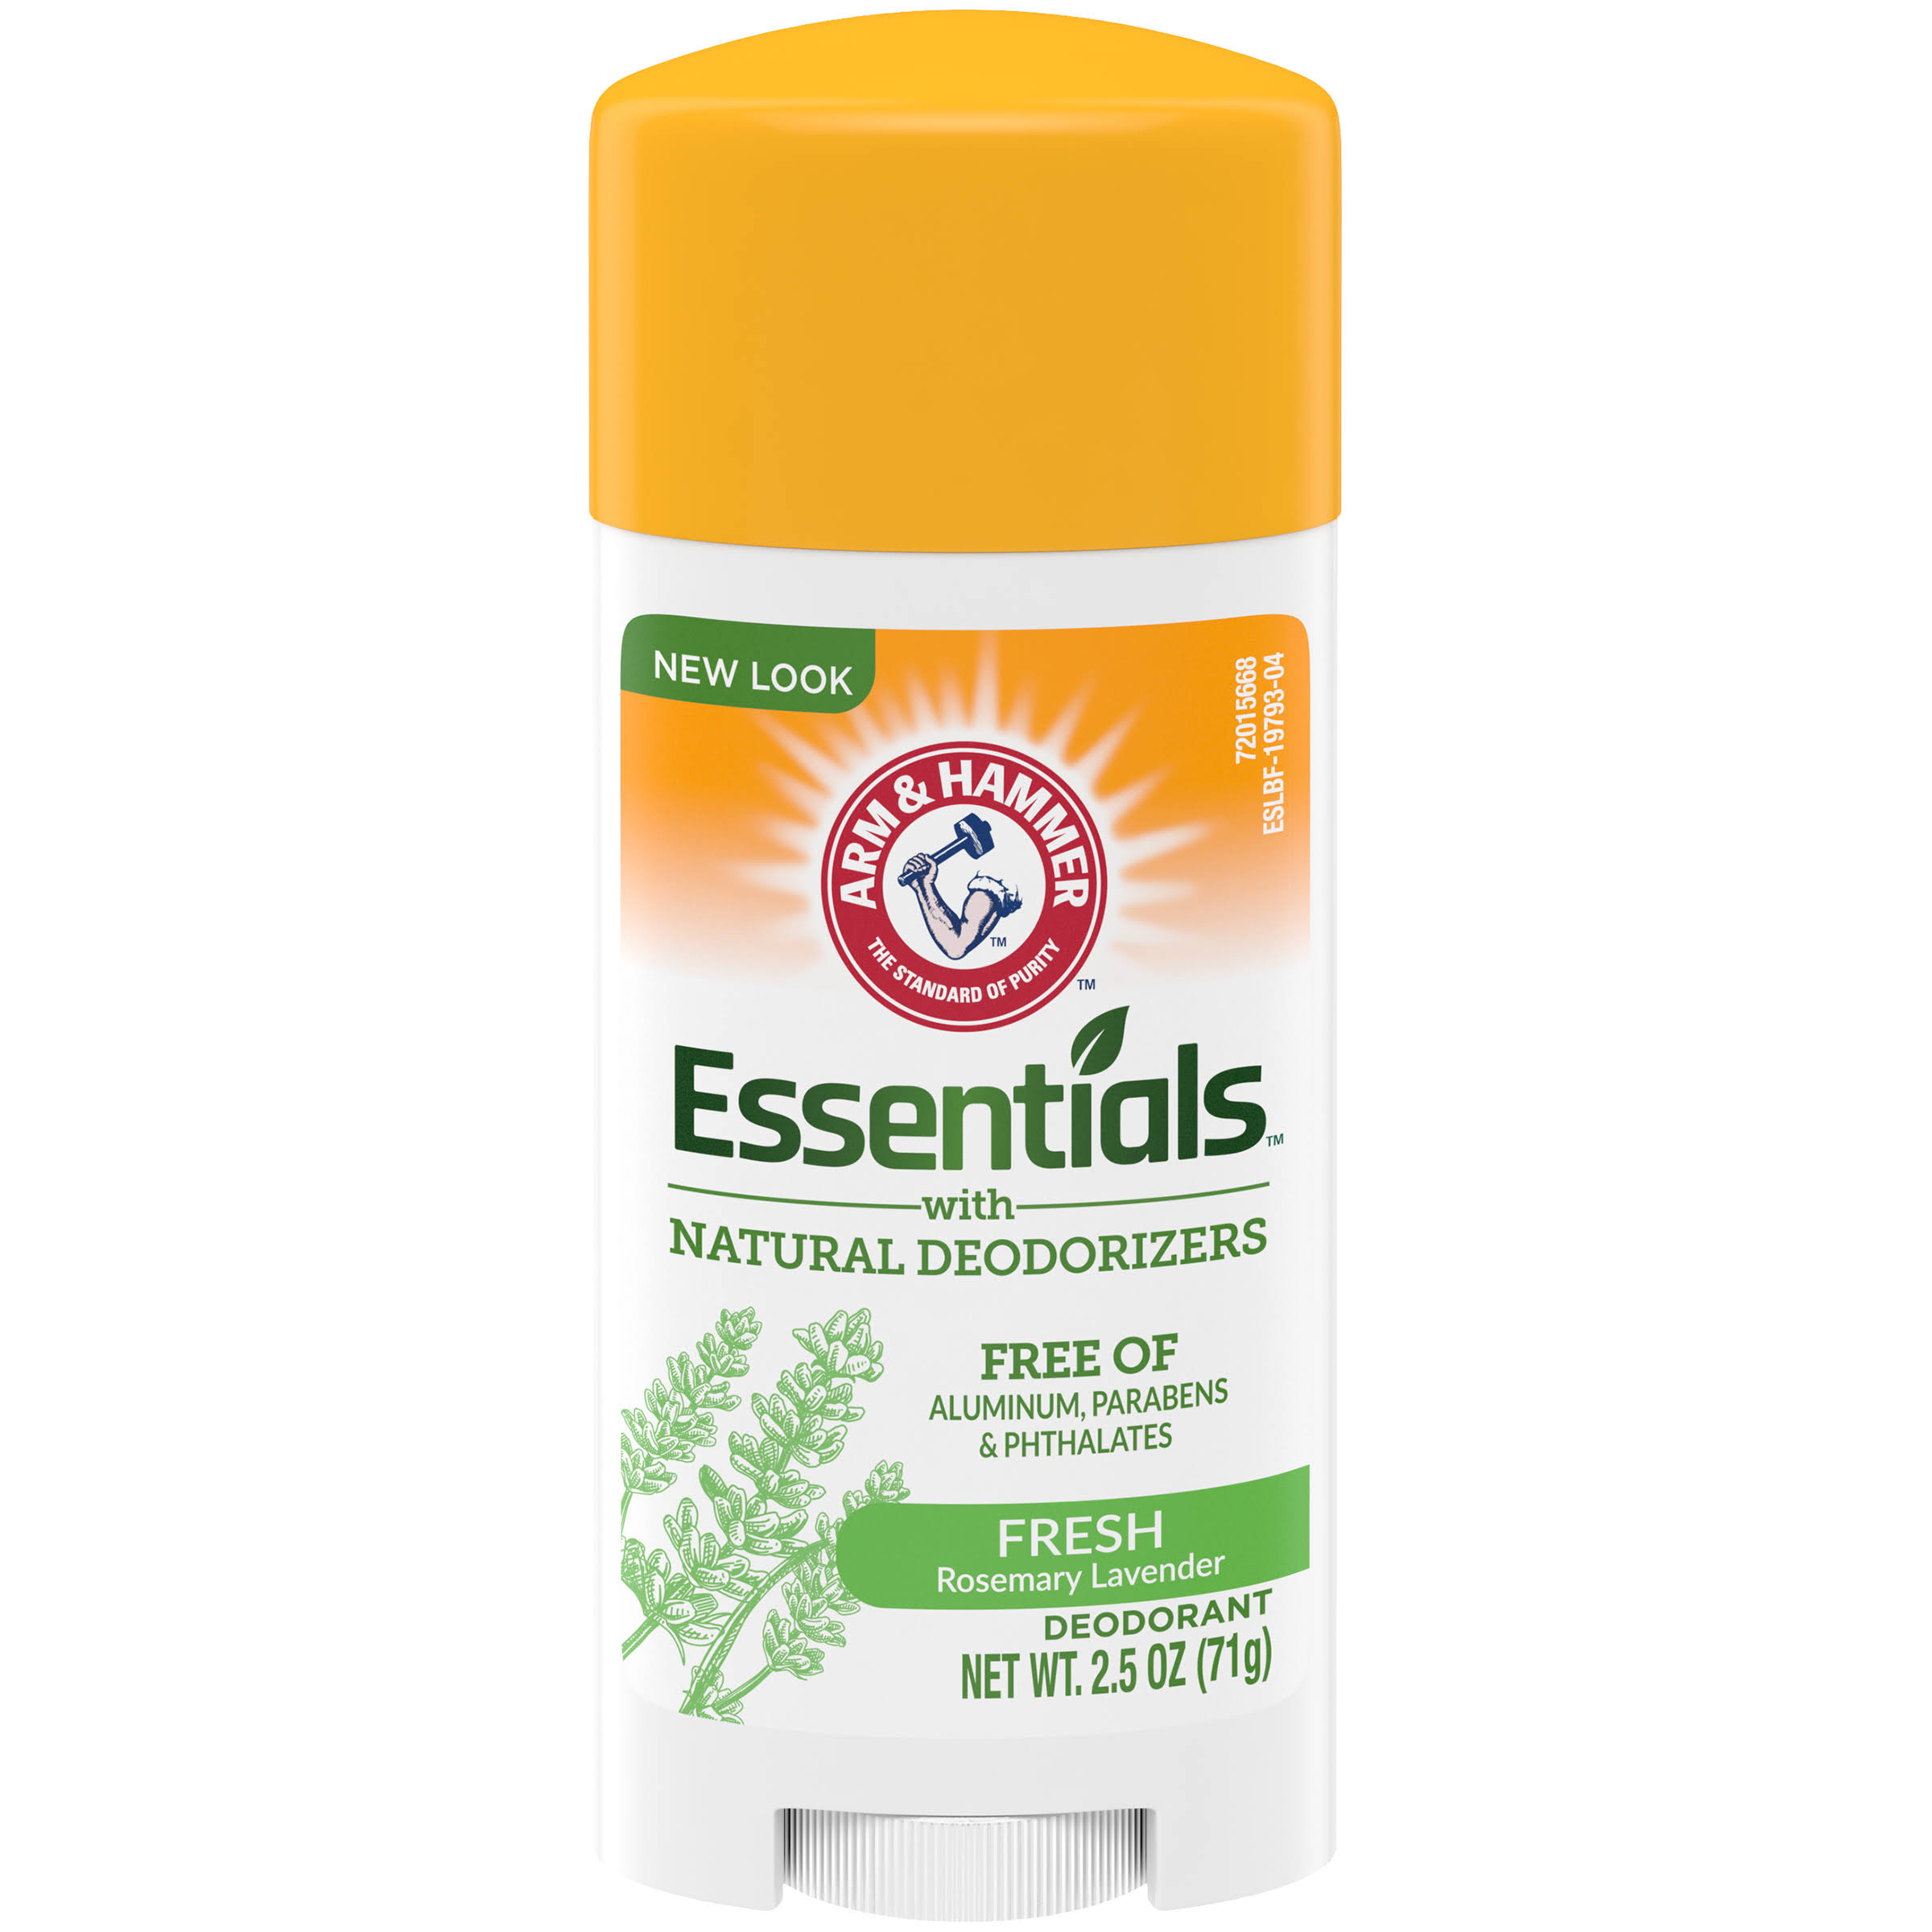 Arm & Hammer Essentials Deodorant - Fresh, 71g